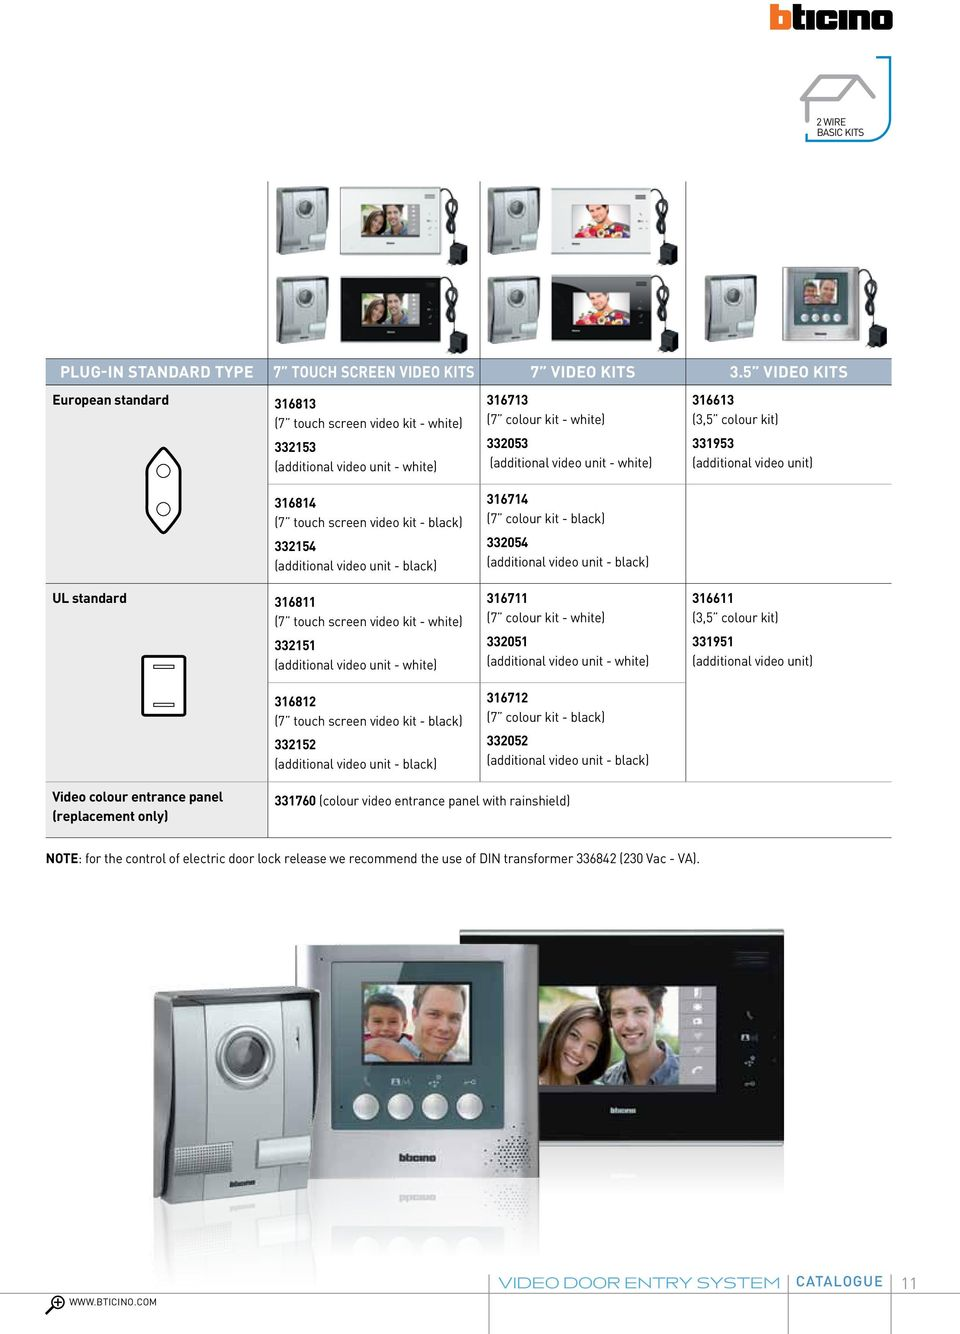 standard 316811 (7 touch screen video kit - white) 332151 (additional video unit - white) 316812 (7 touch screen video kit - black) 332152 (additional video unit - black) 316713 (7 colour kit -